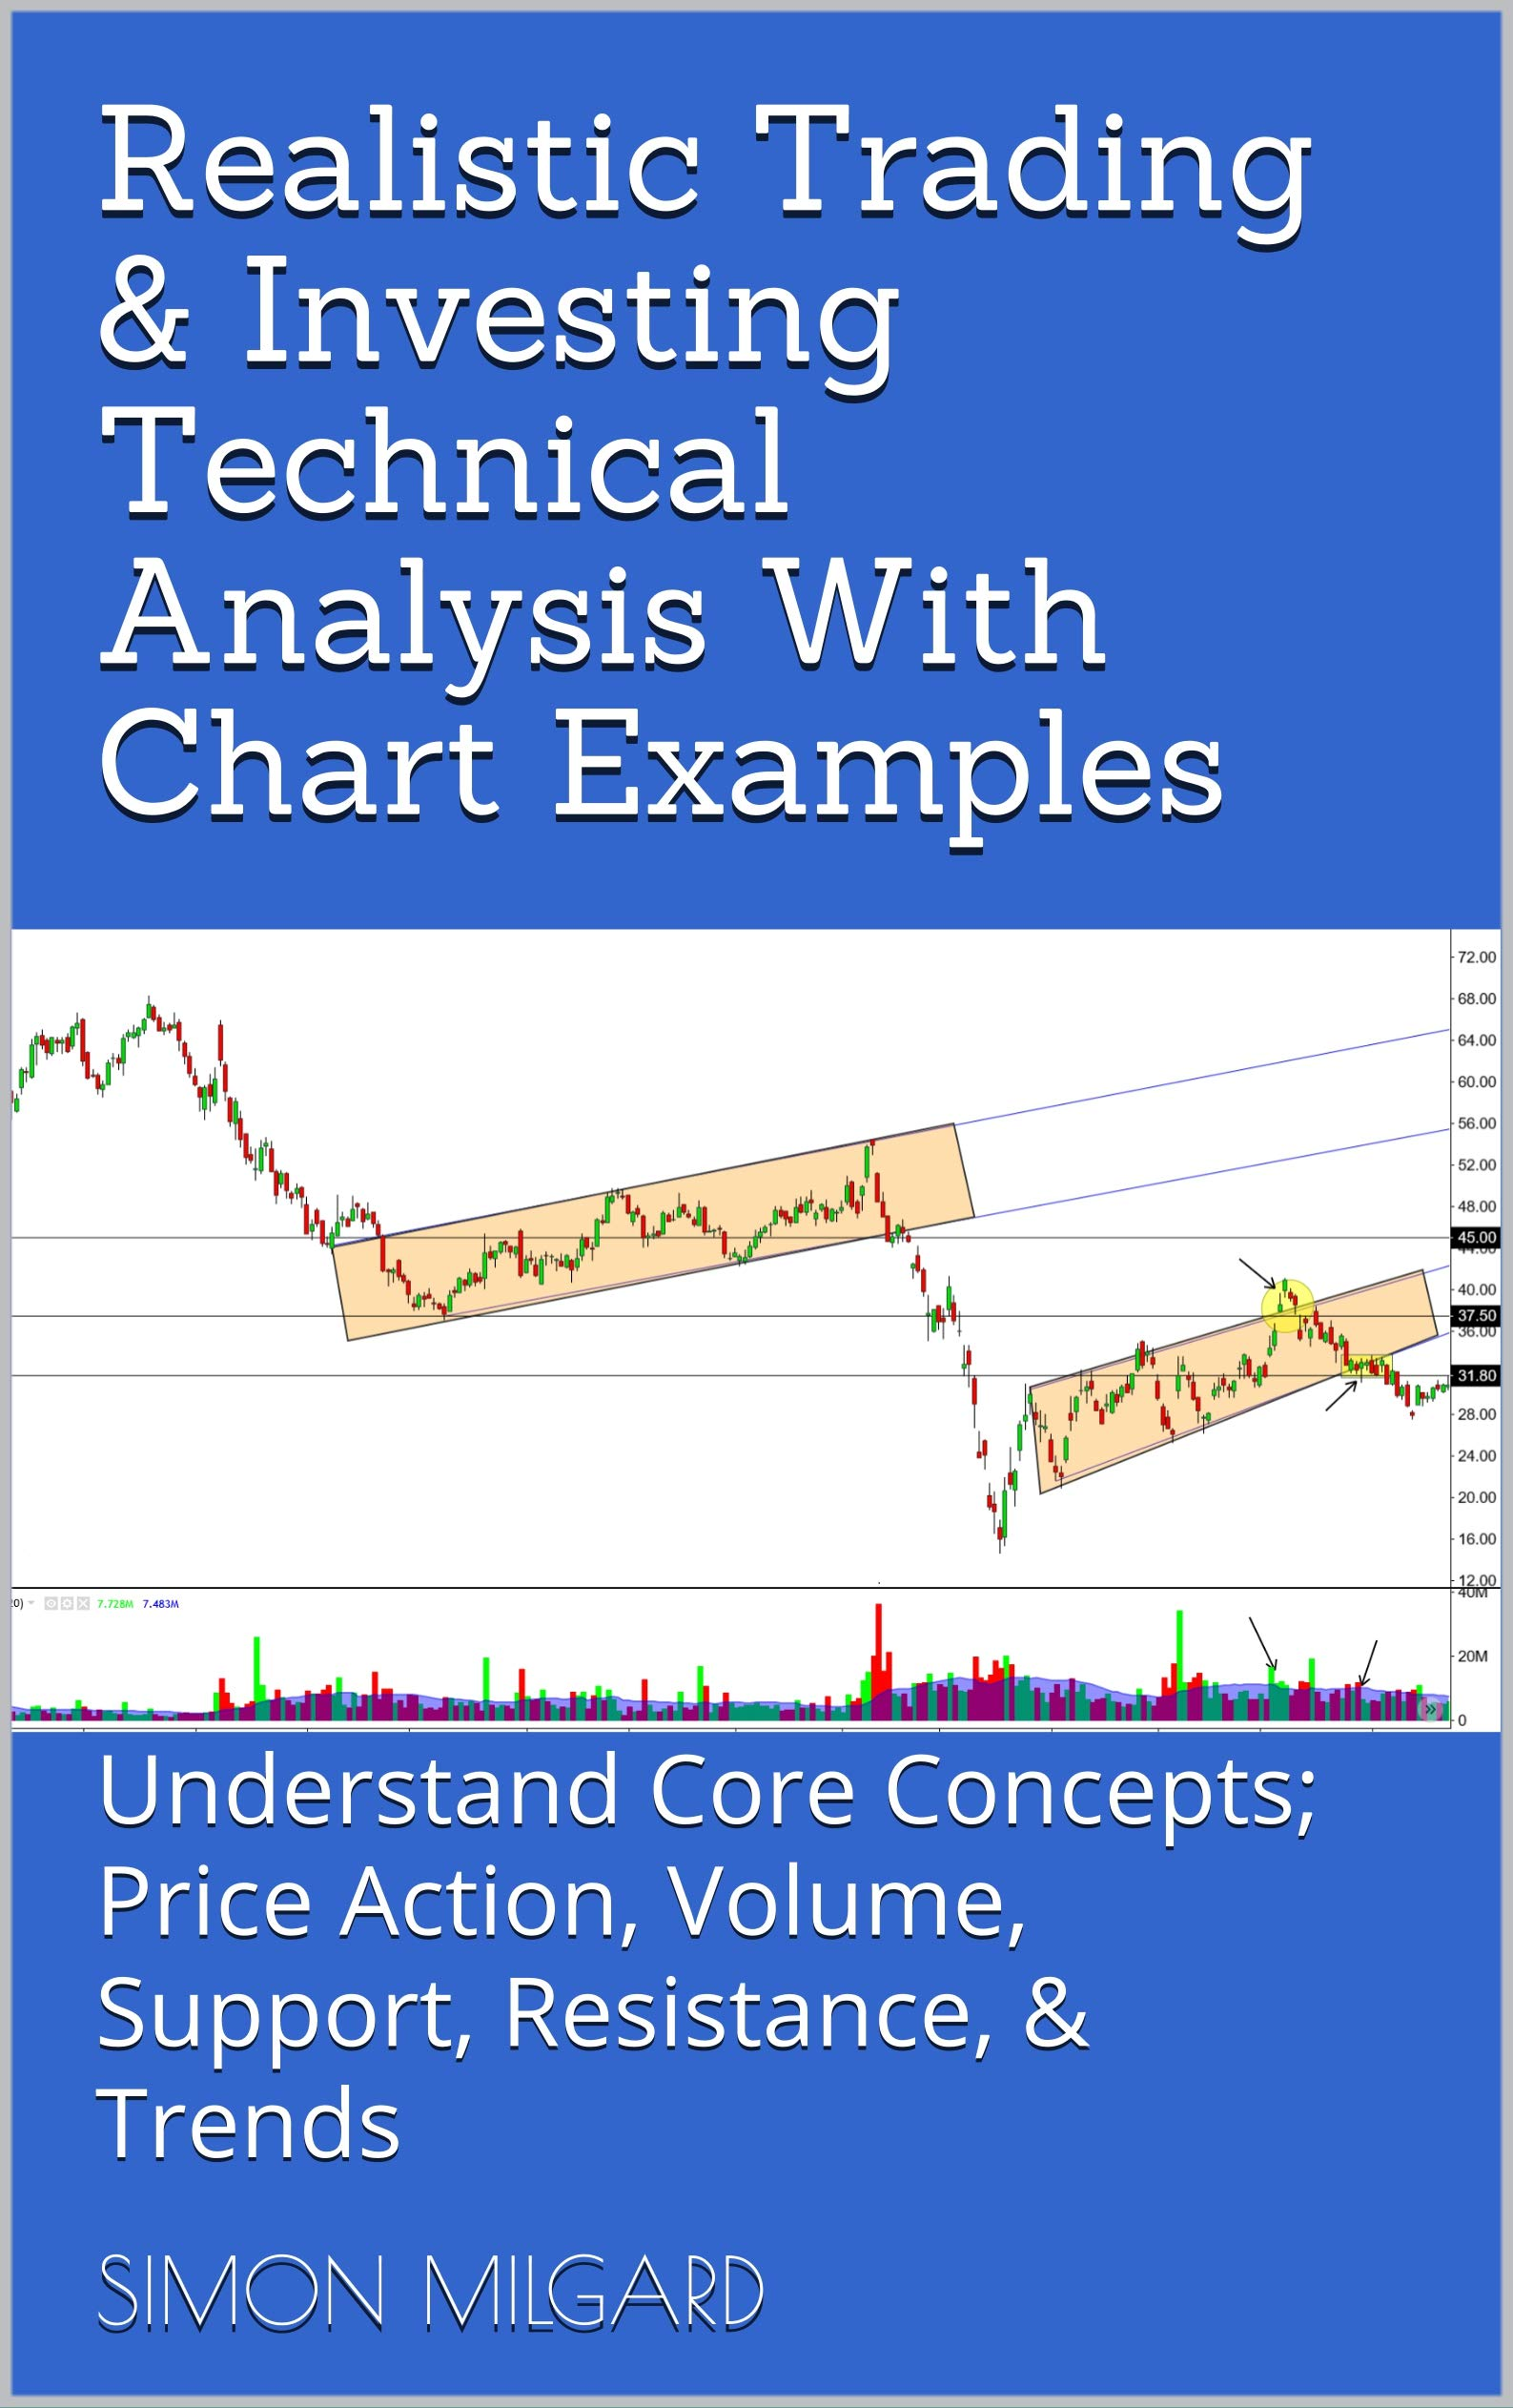 Realistic Trading & Investing Technical Analysis With Chart Examples: Understand Core Concepts; Price Action, Volume, Support, Resistance, & Trends